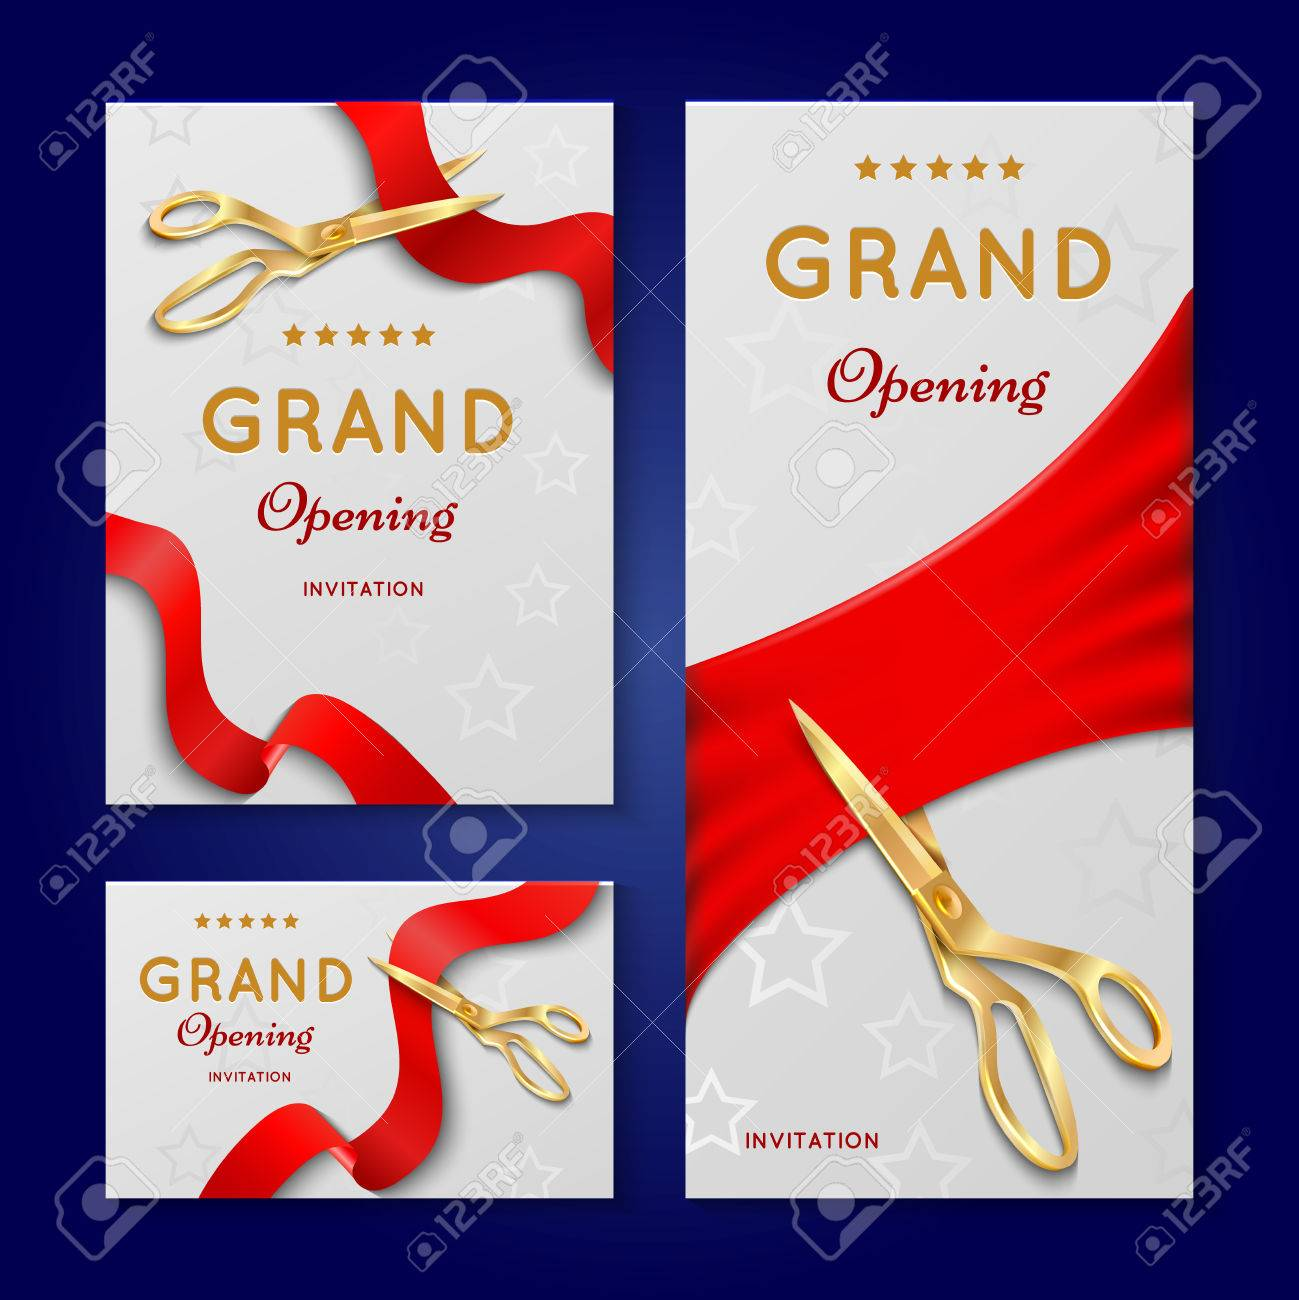 Ribbon Cutting With Scissors Grand Opening Ceremony Vector Invitation Cards Invintation Banner To Event